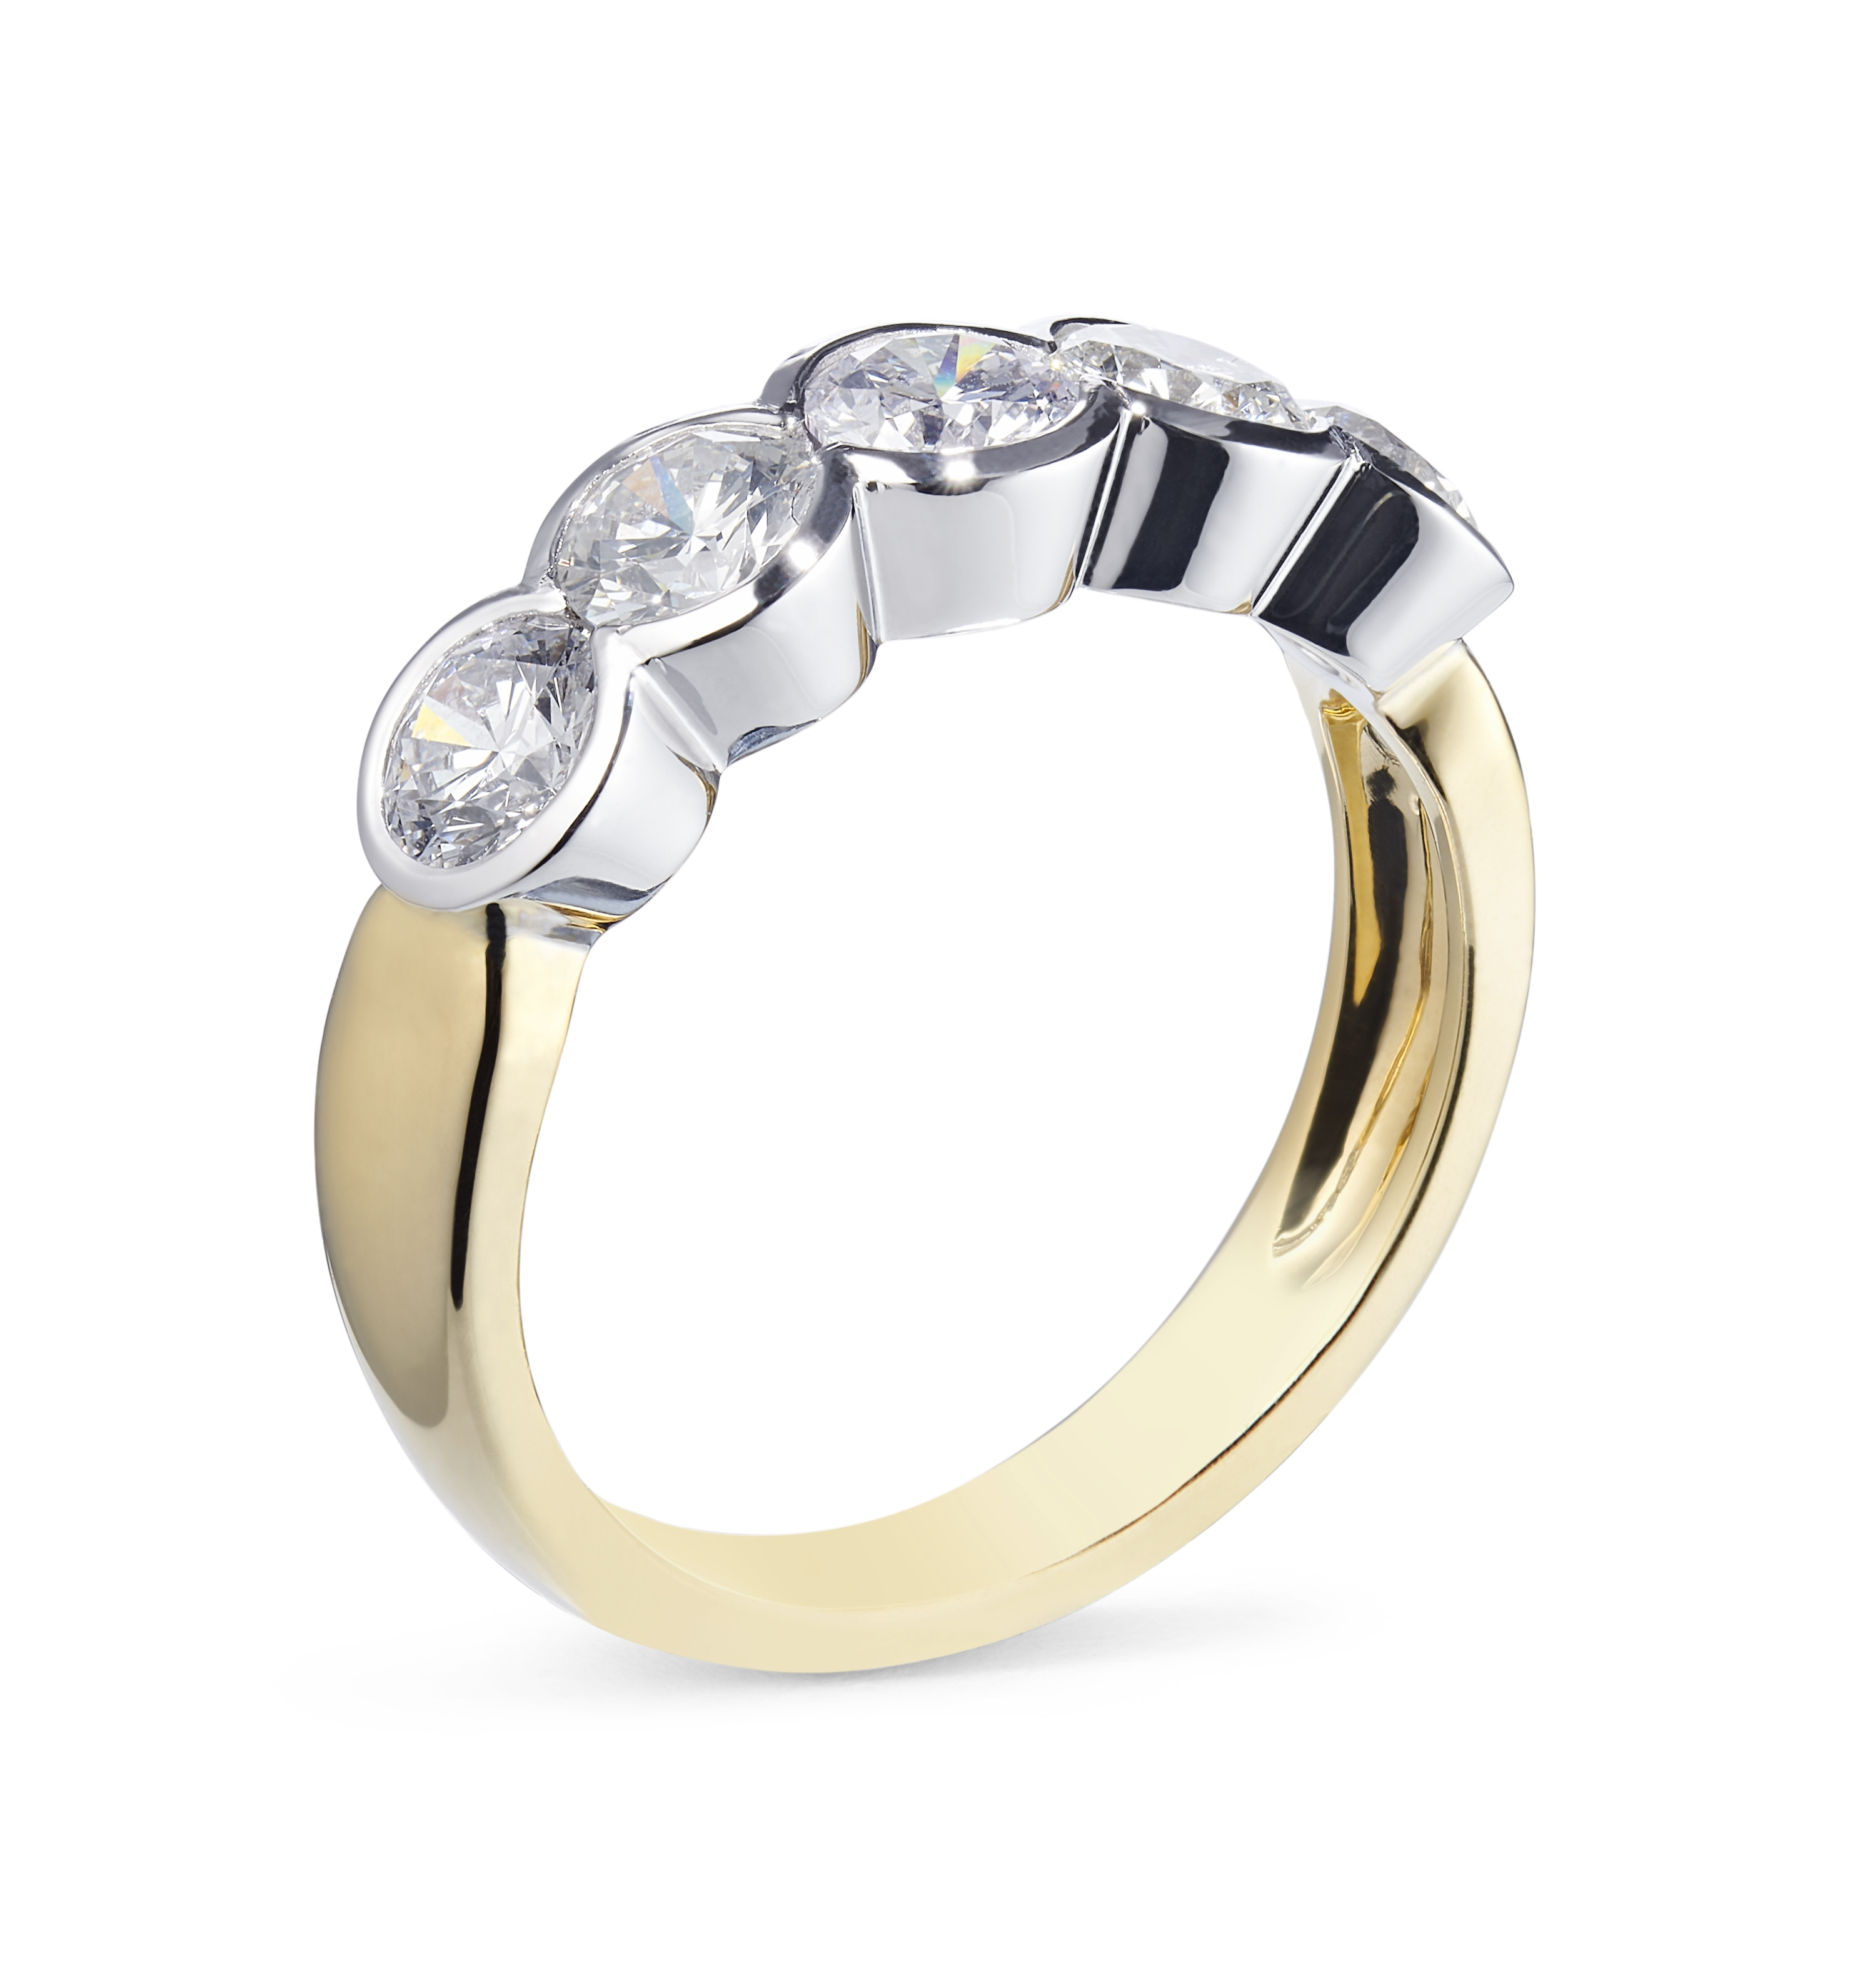 18ct Yellow and White Gold 5 Stone 1.83ct Rubover Diamond Ring